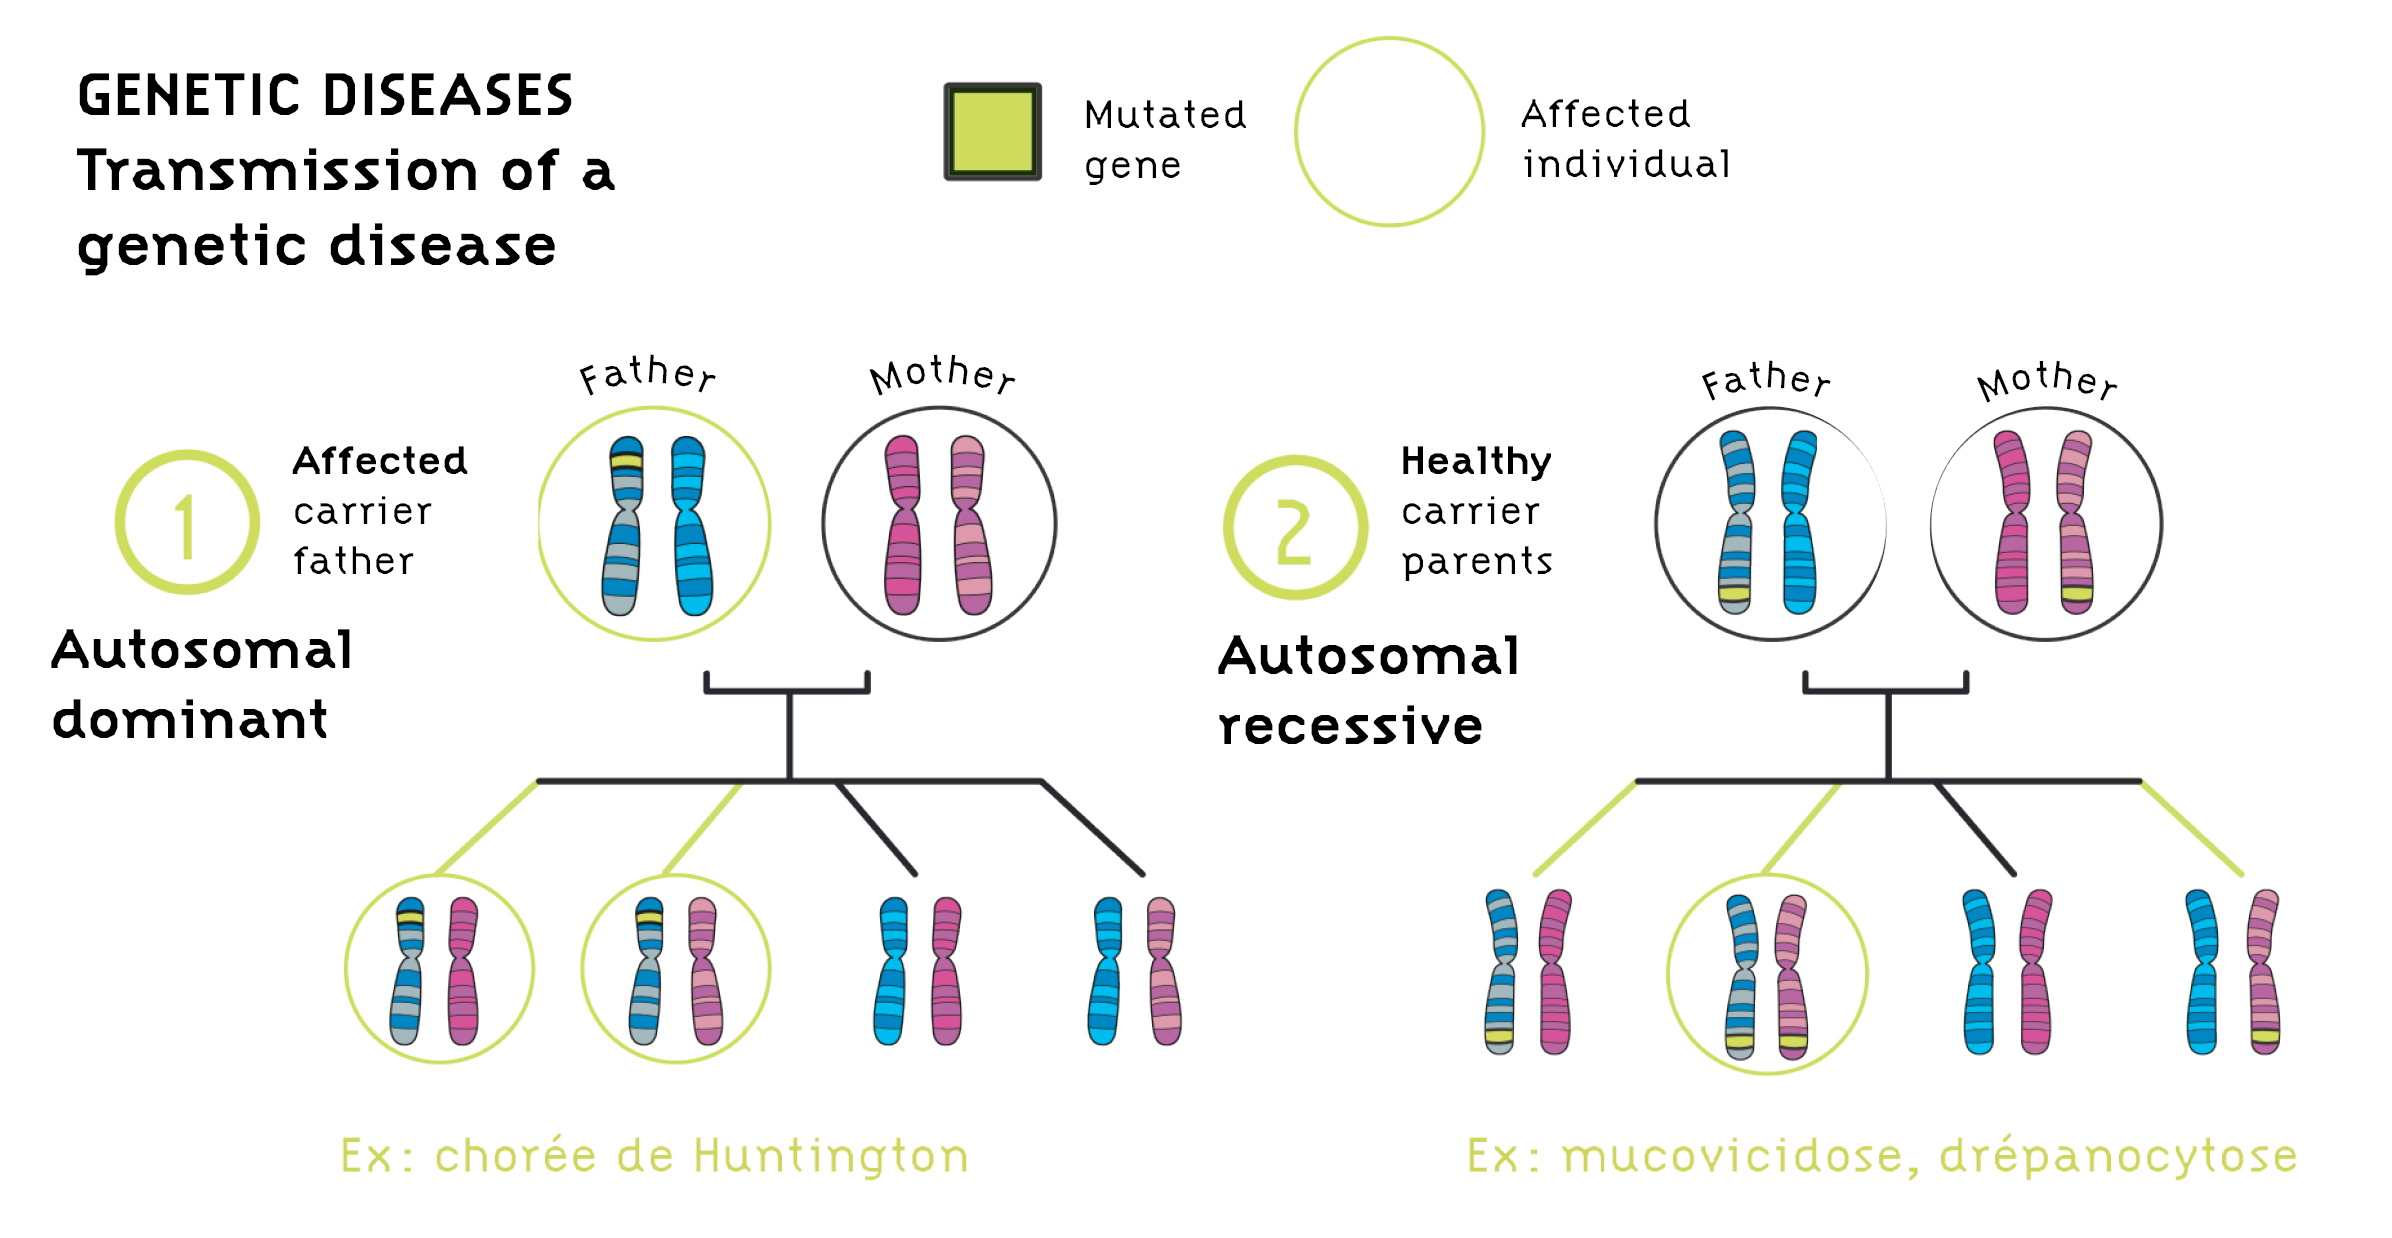 Transmission of a genetic disease